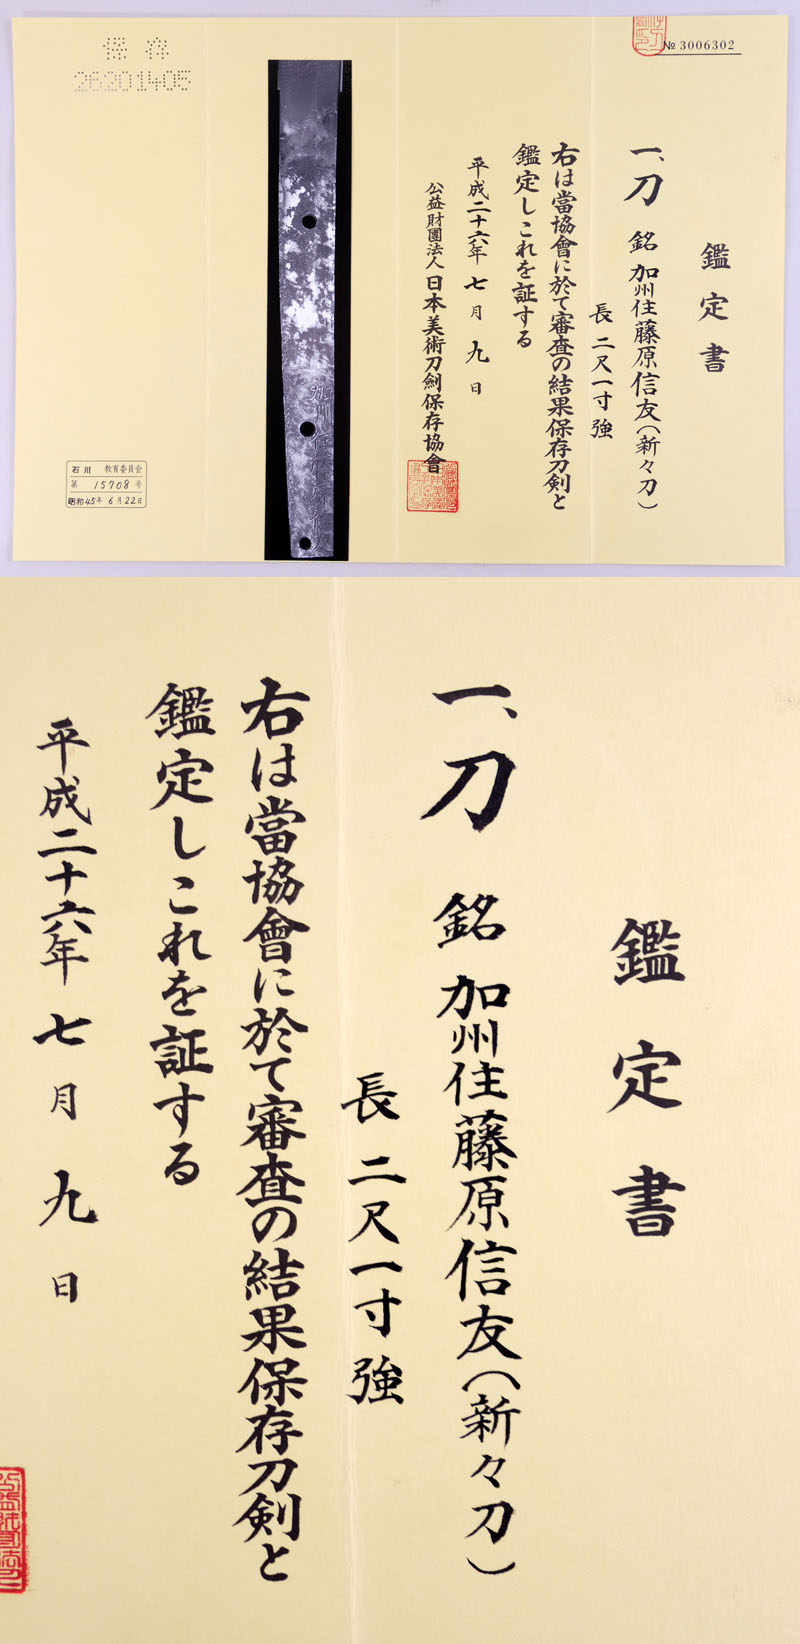 加州住藤原信友 Picture of Certificate